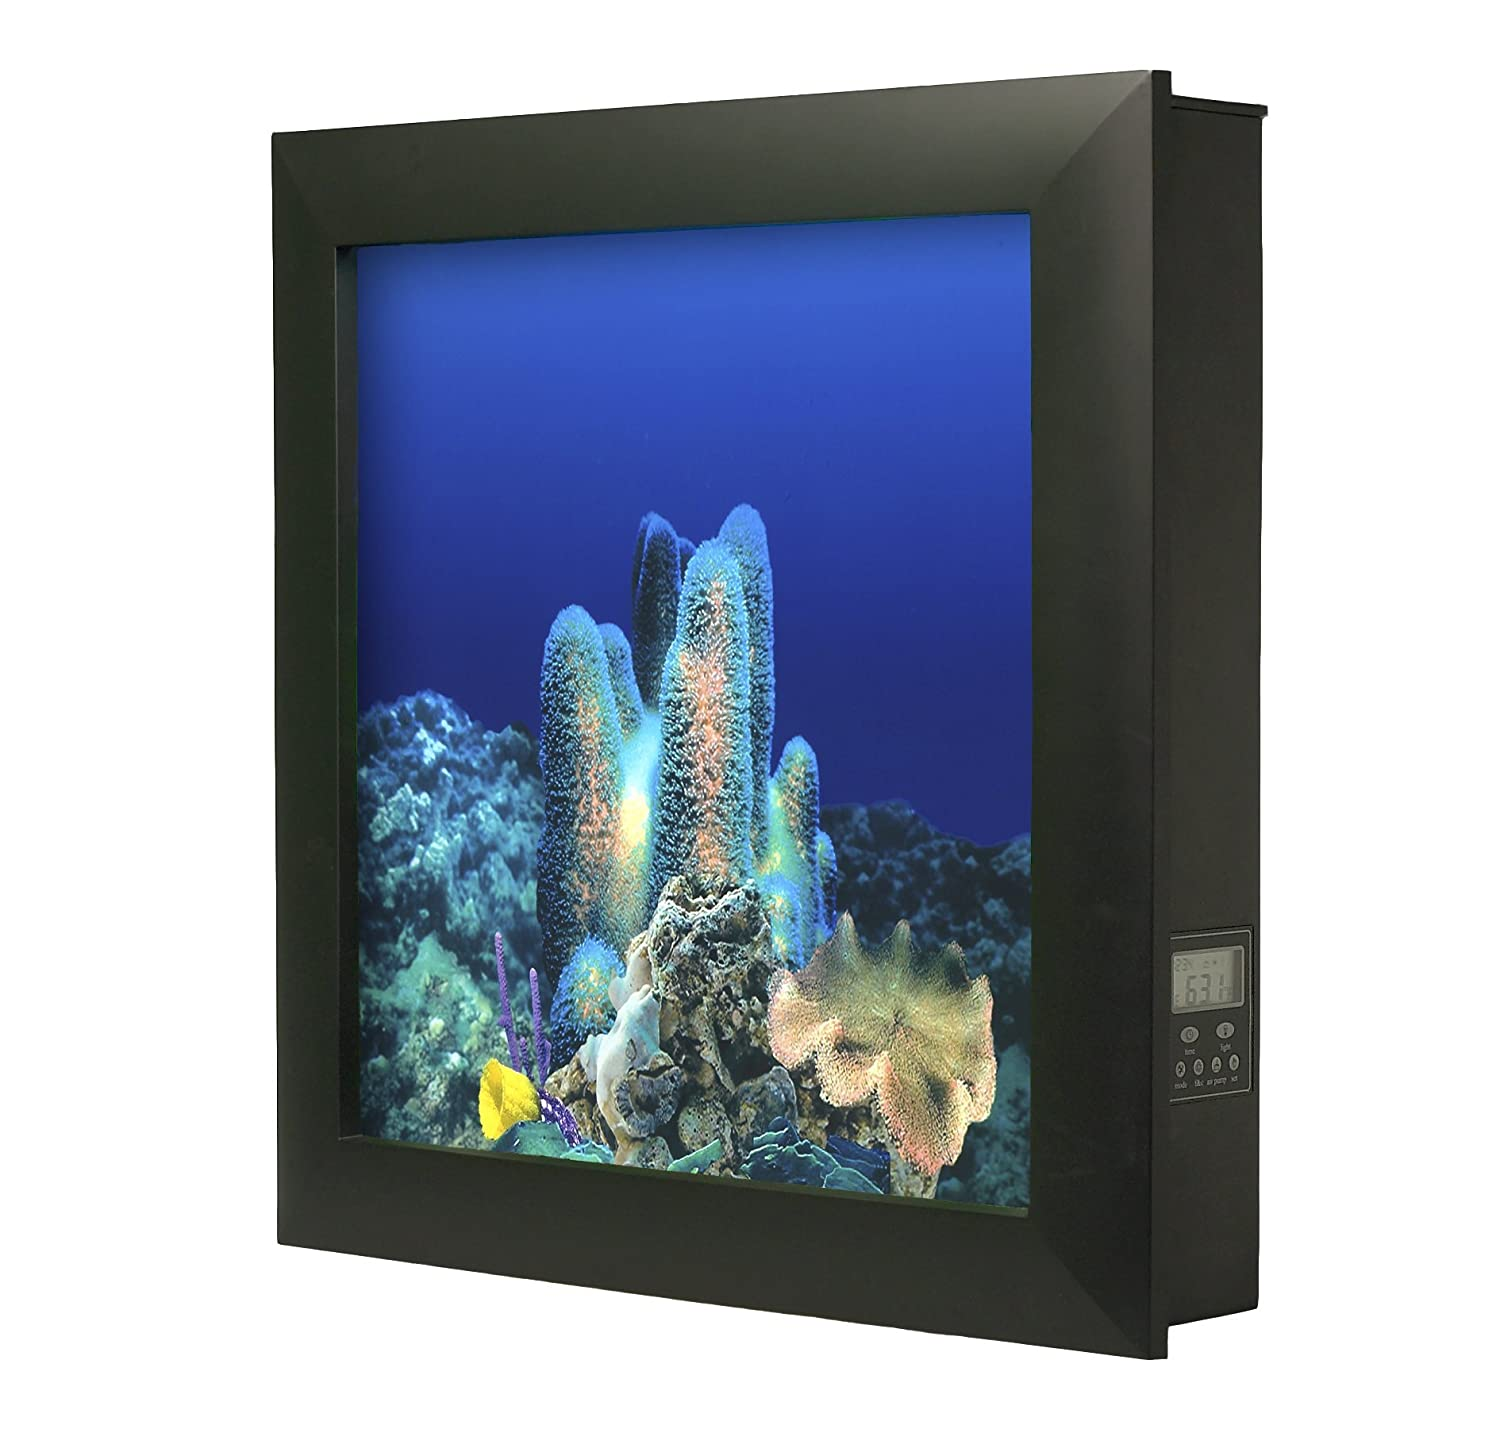 Amazon aquavista 500 wall mounted aquarium with coral reef amazon aquavista 500 wall mounted aquarium with coral reef background black frame saltwater aquarium pet supplies jeuxipadfo Images